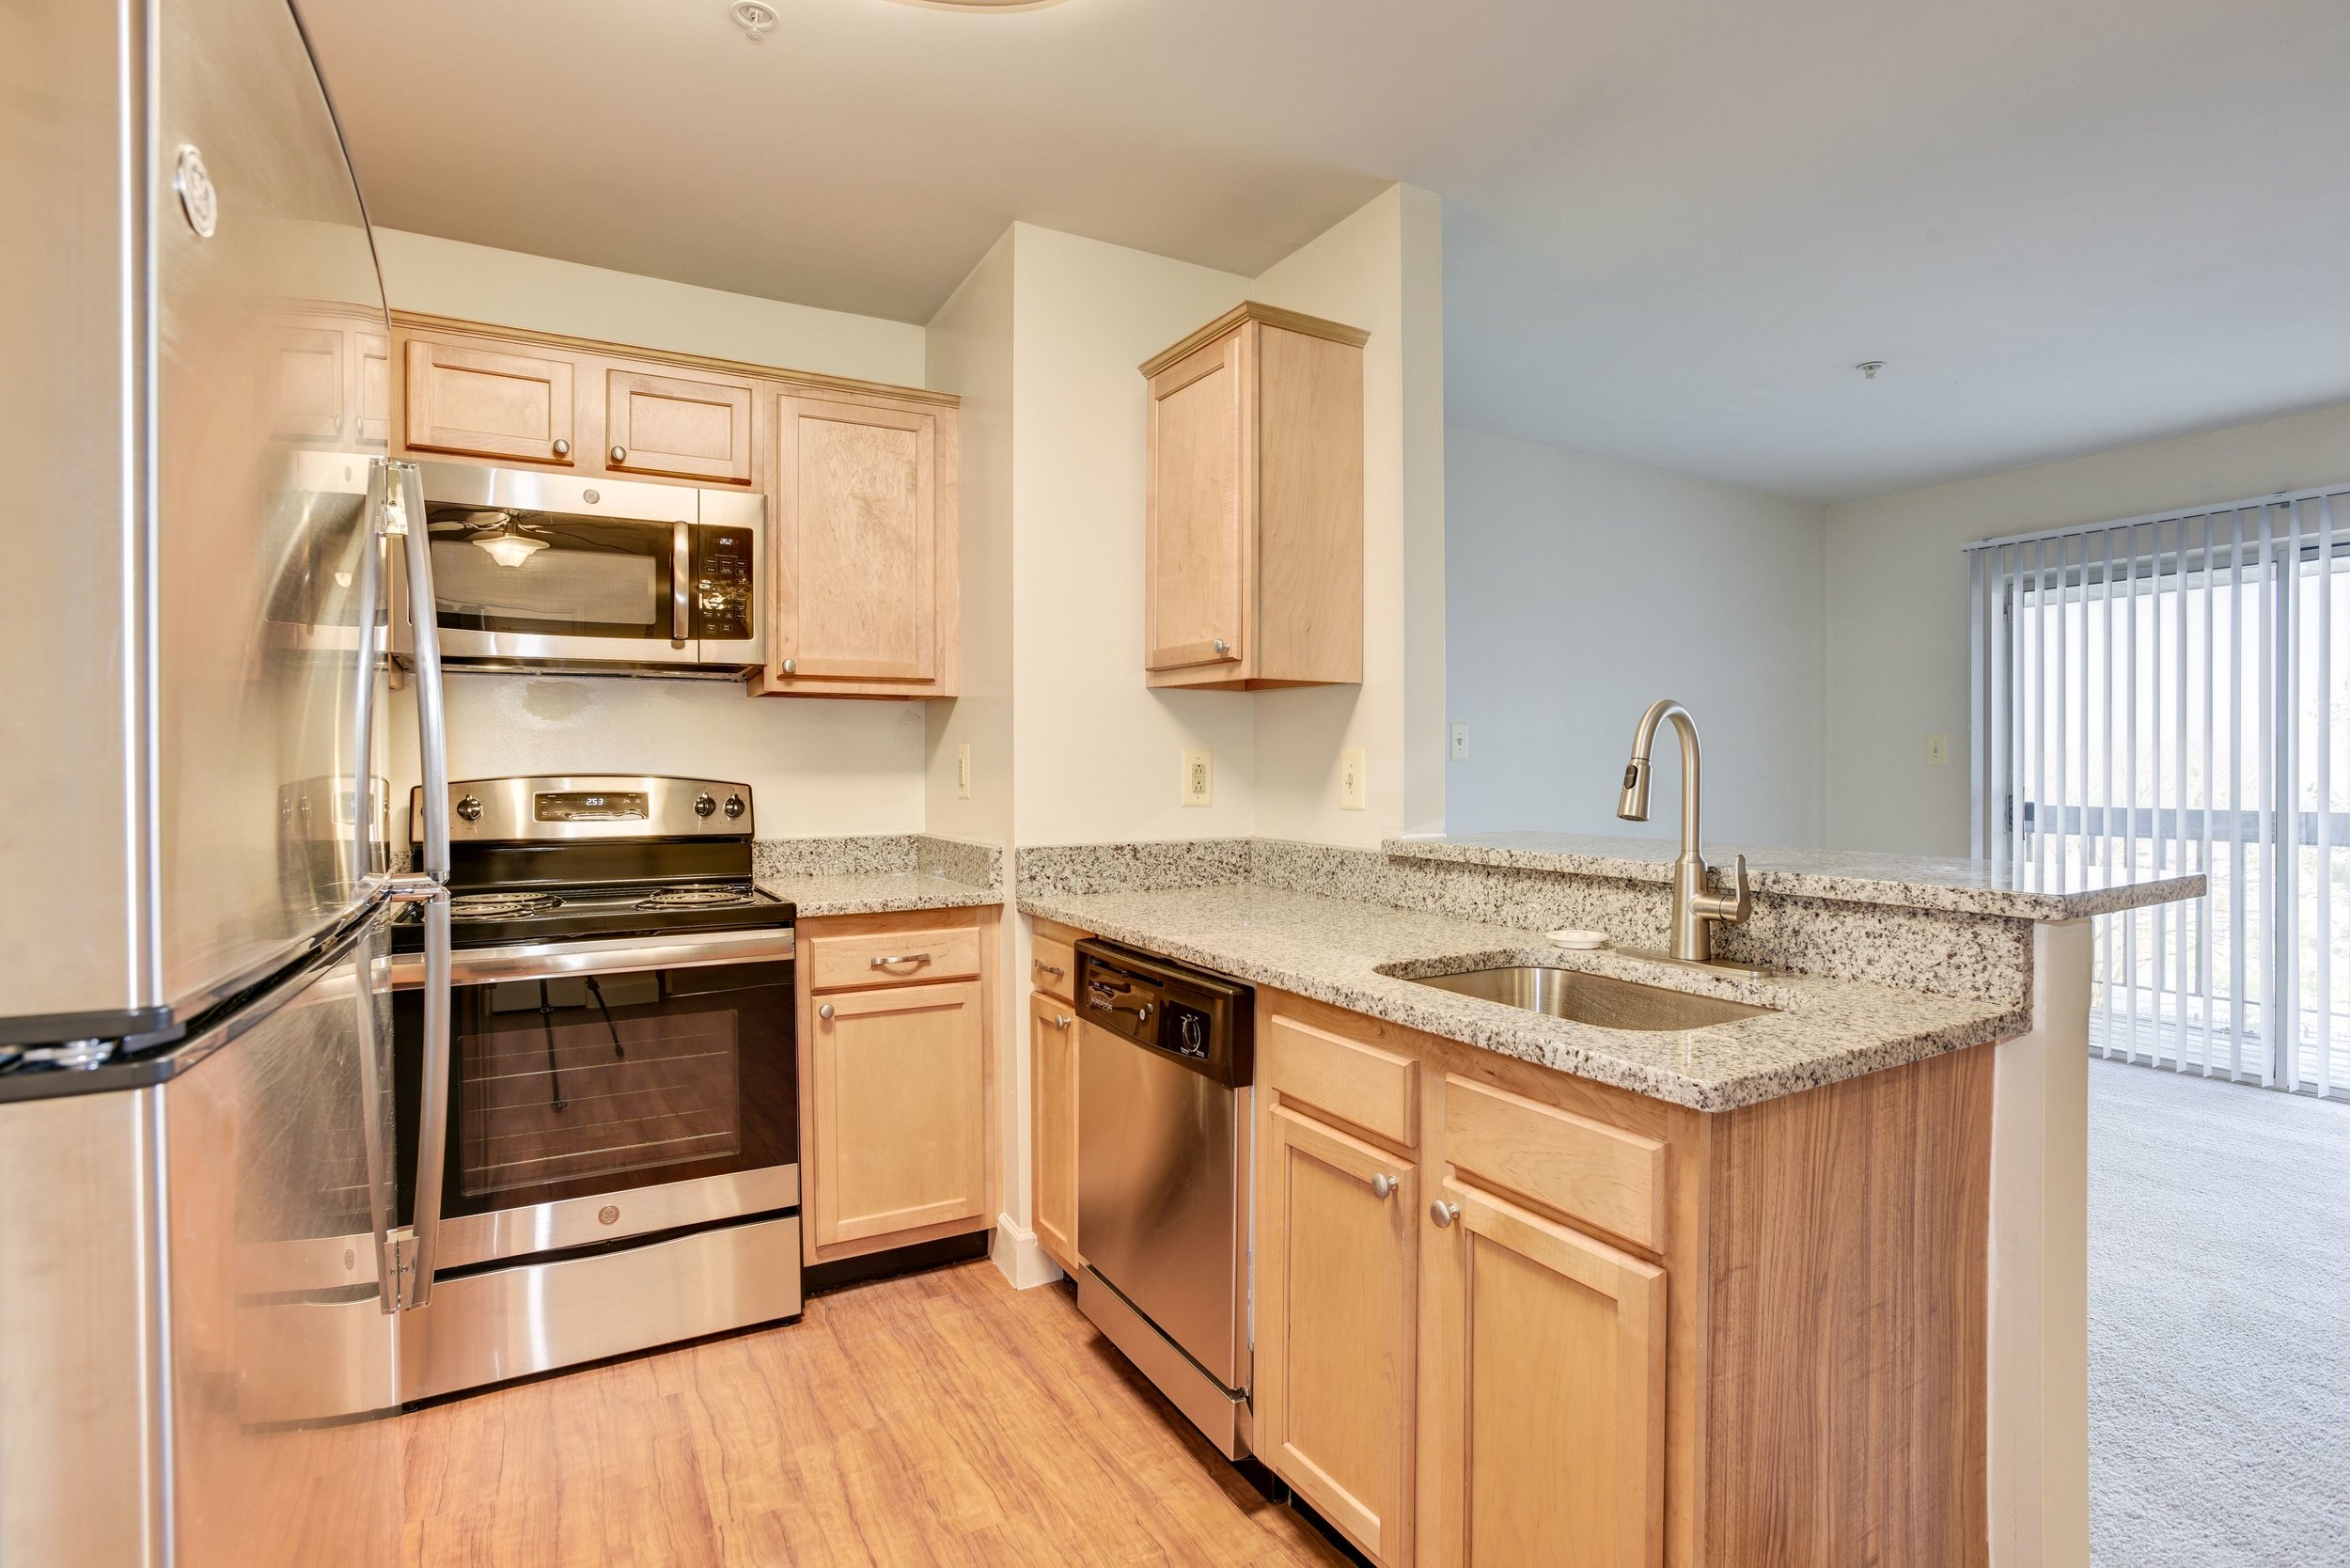 Renovated Kitchen at Fox Run Apartments in Edgewood, MD